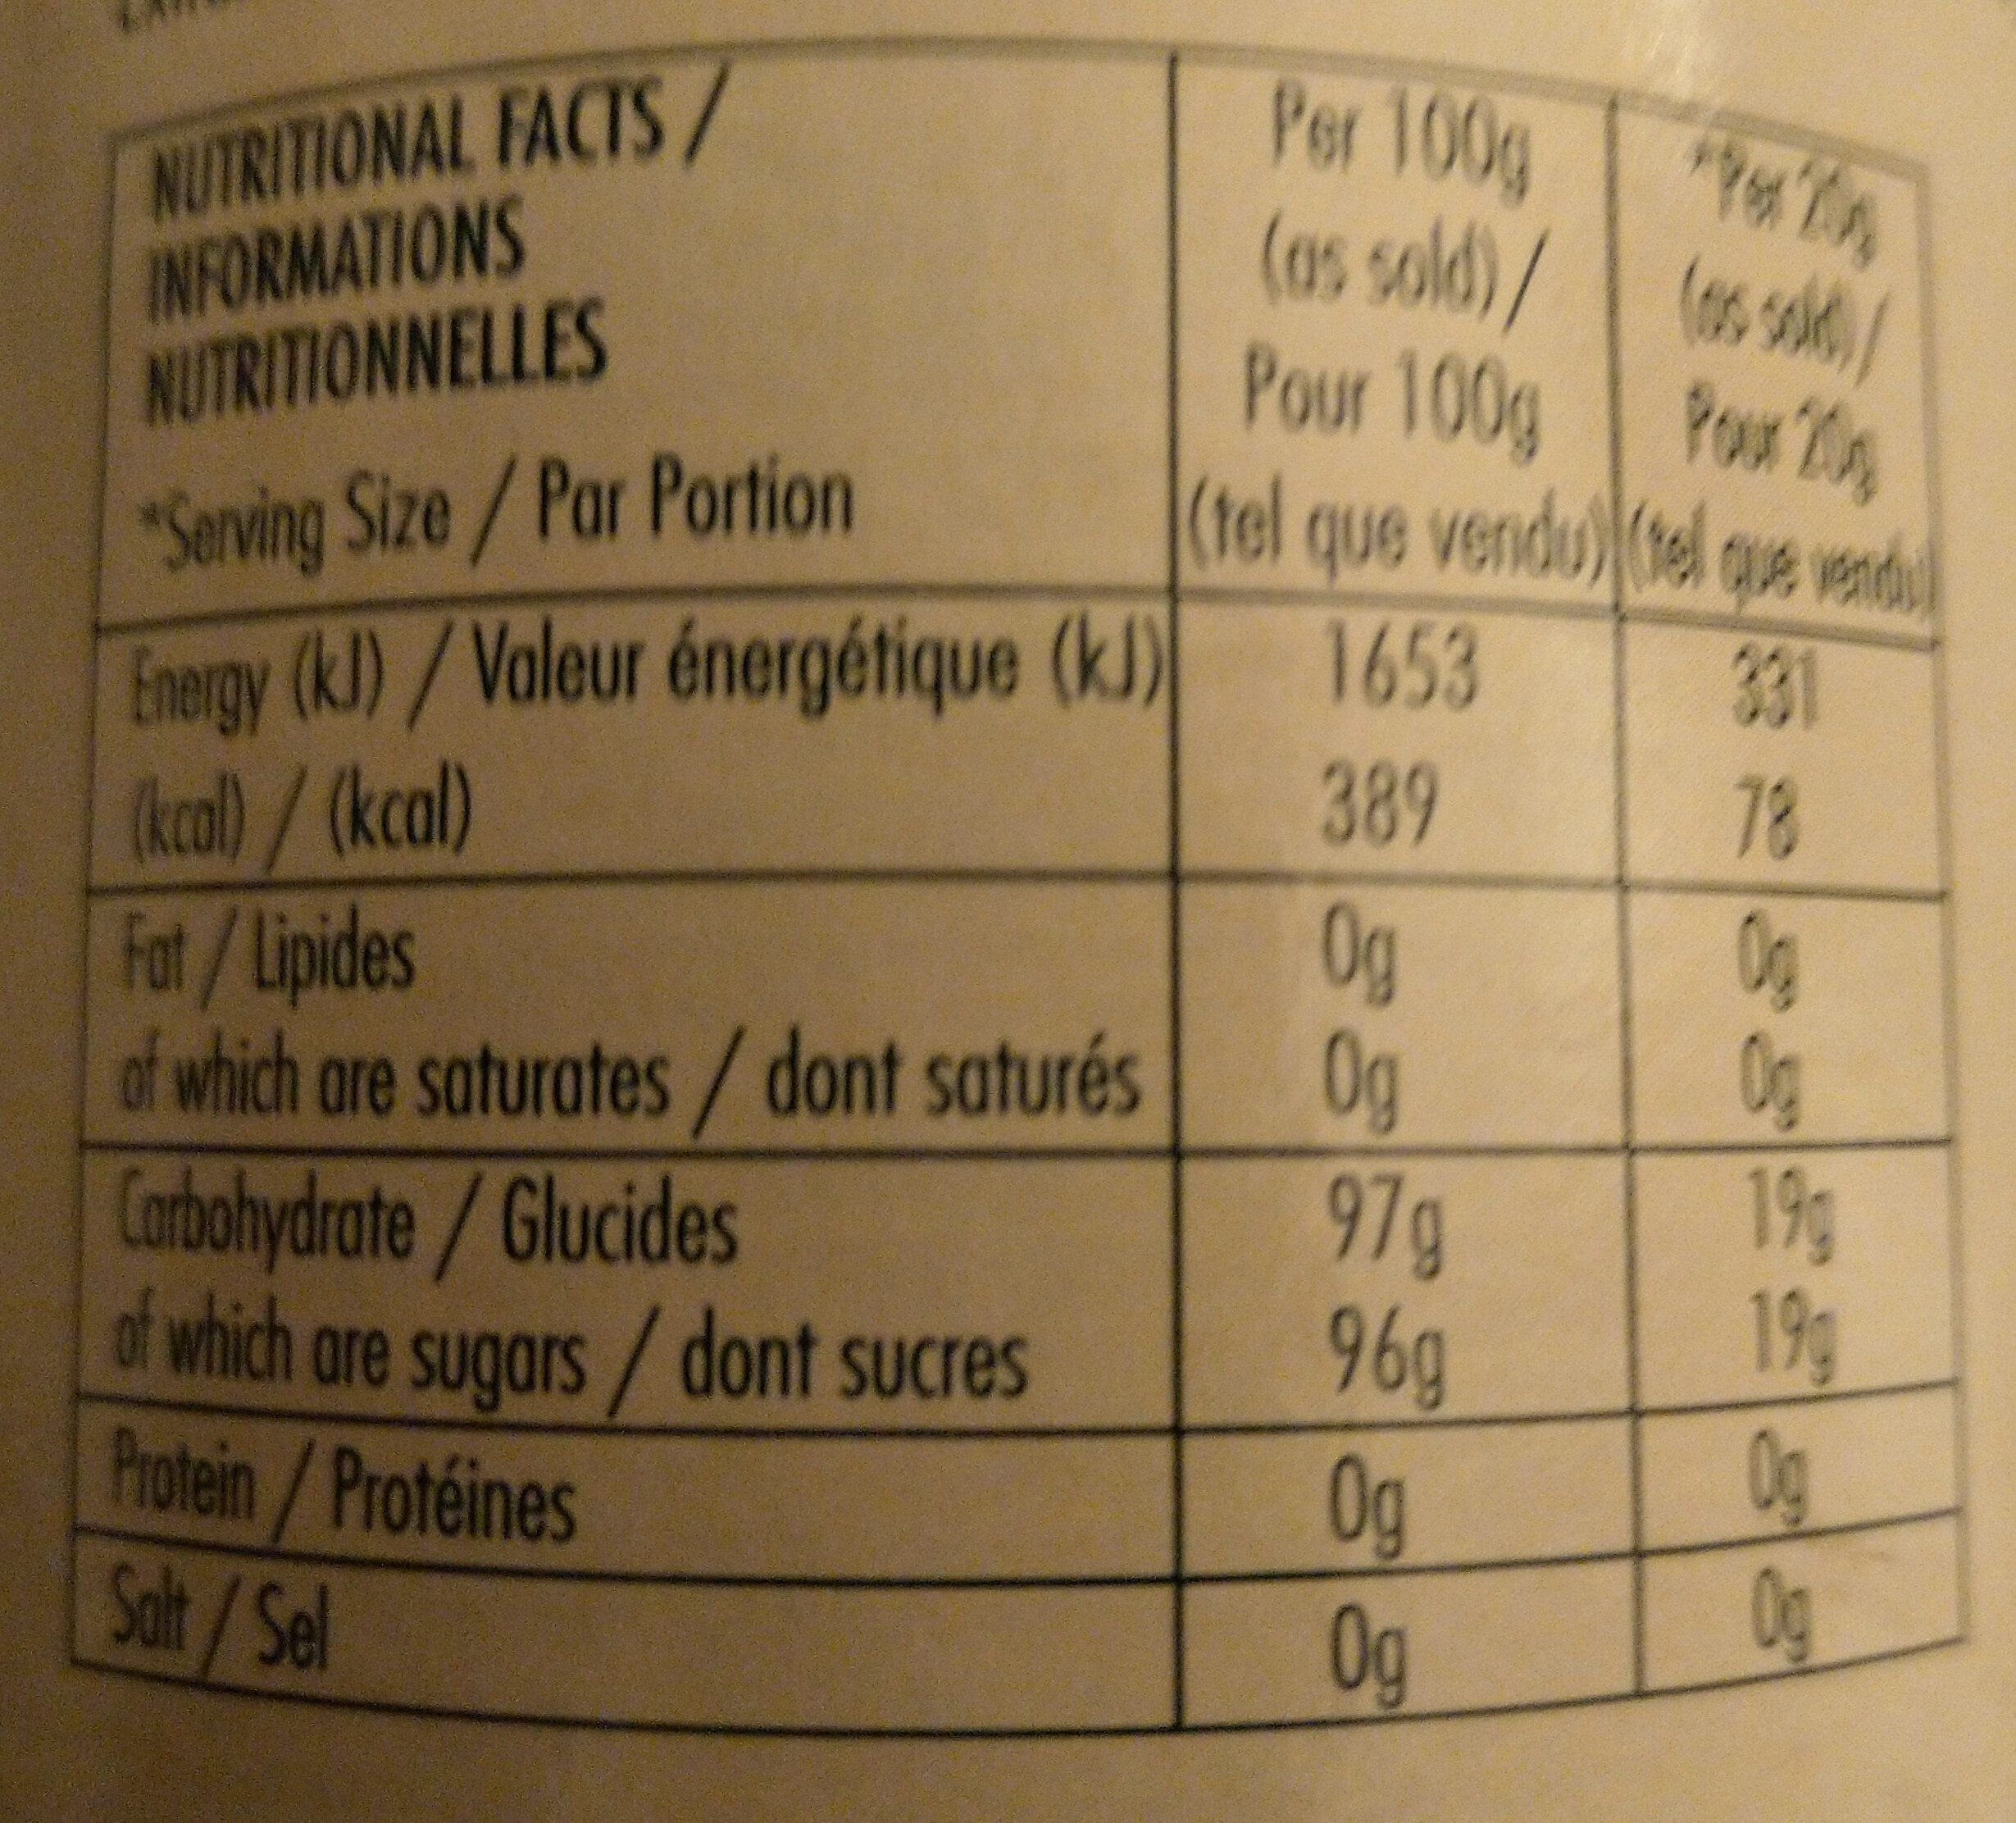 dreamtime - Nutrition facts